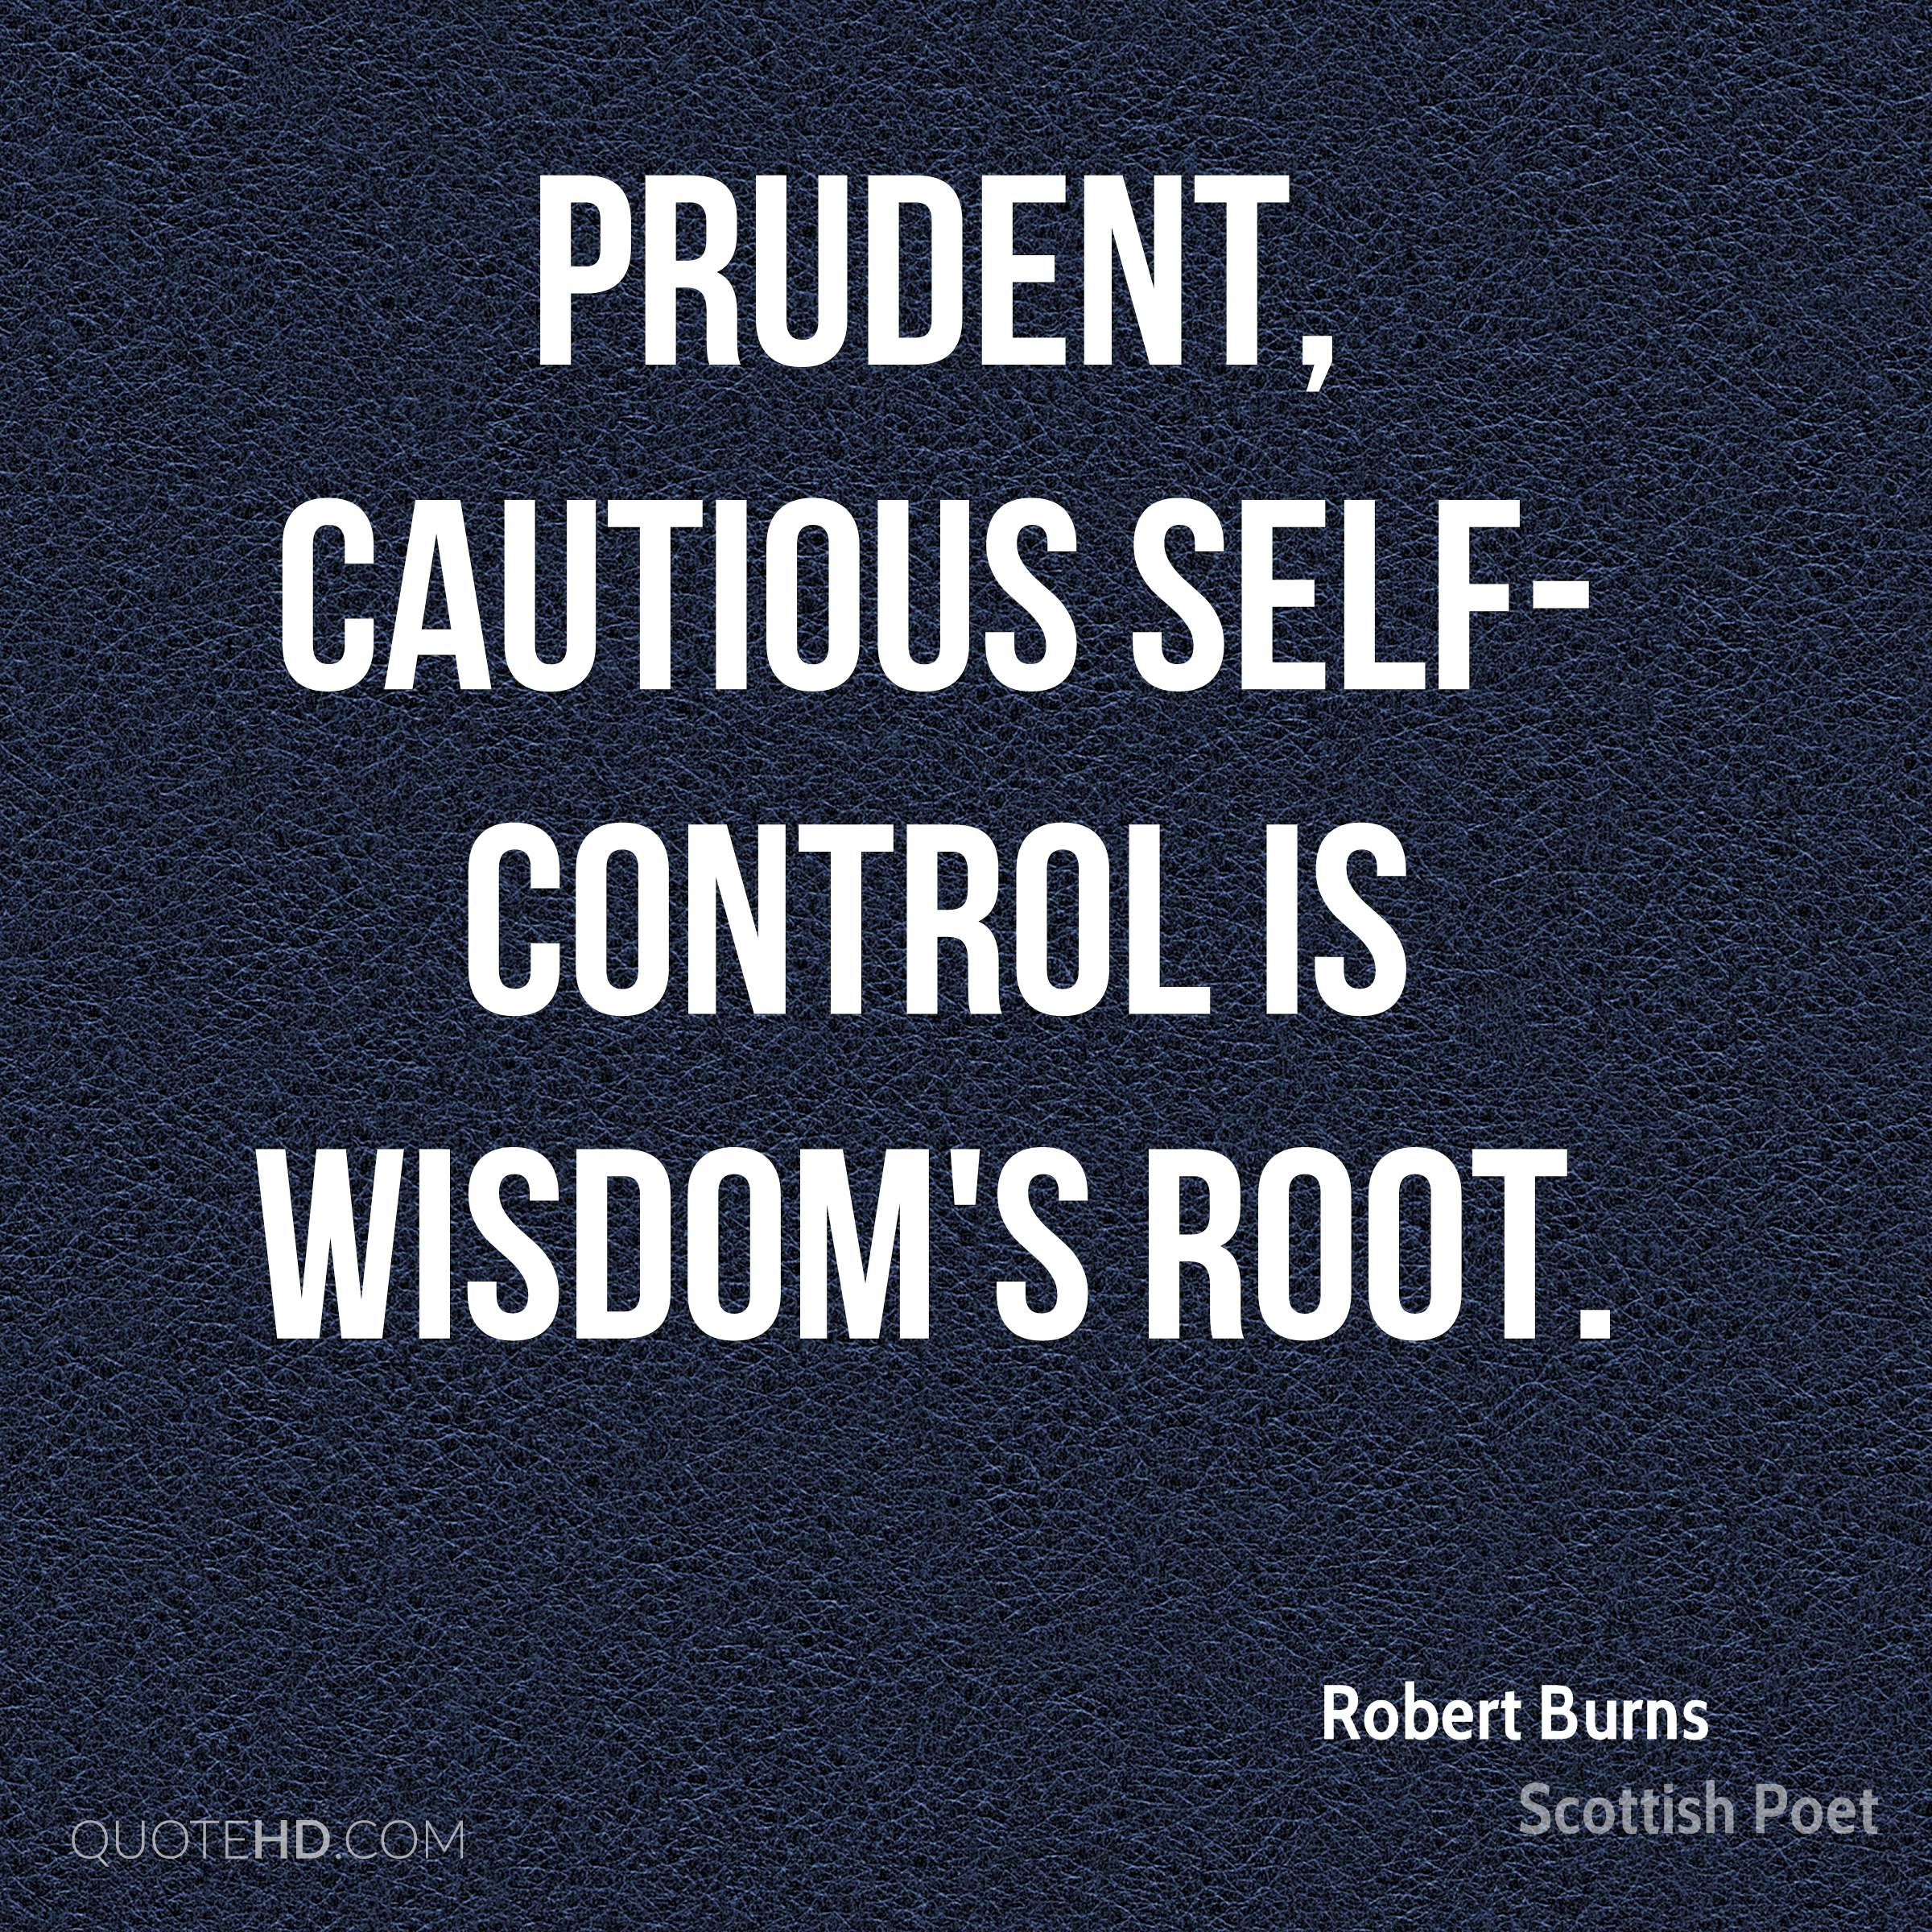 Prudent, cautious self-control Is wisdom's root.